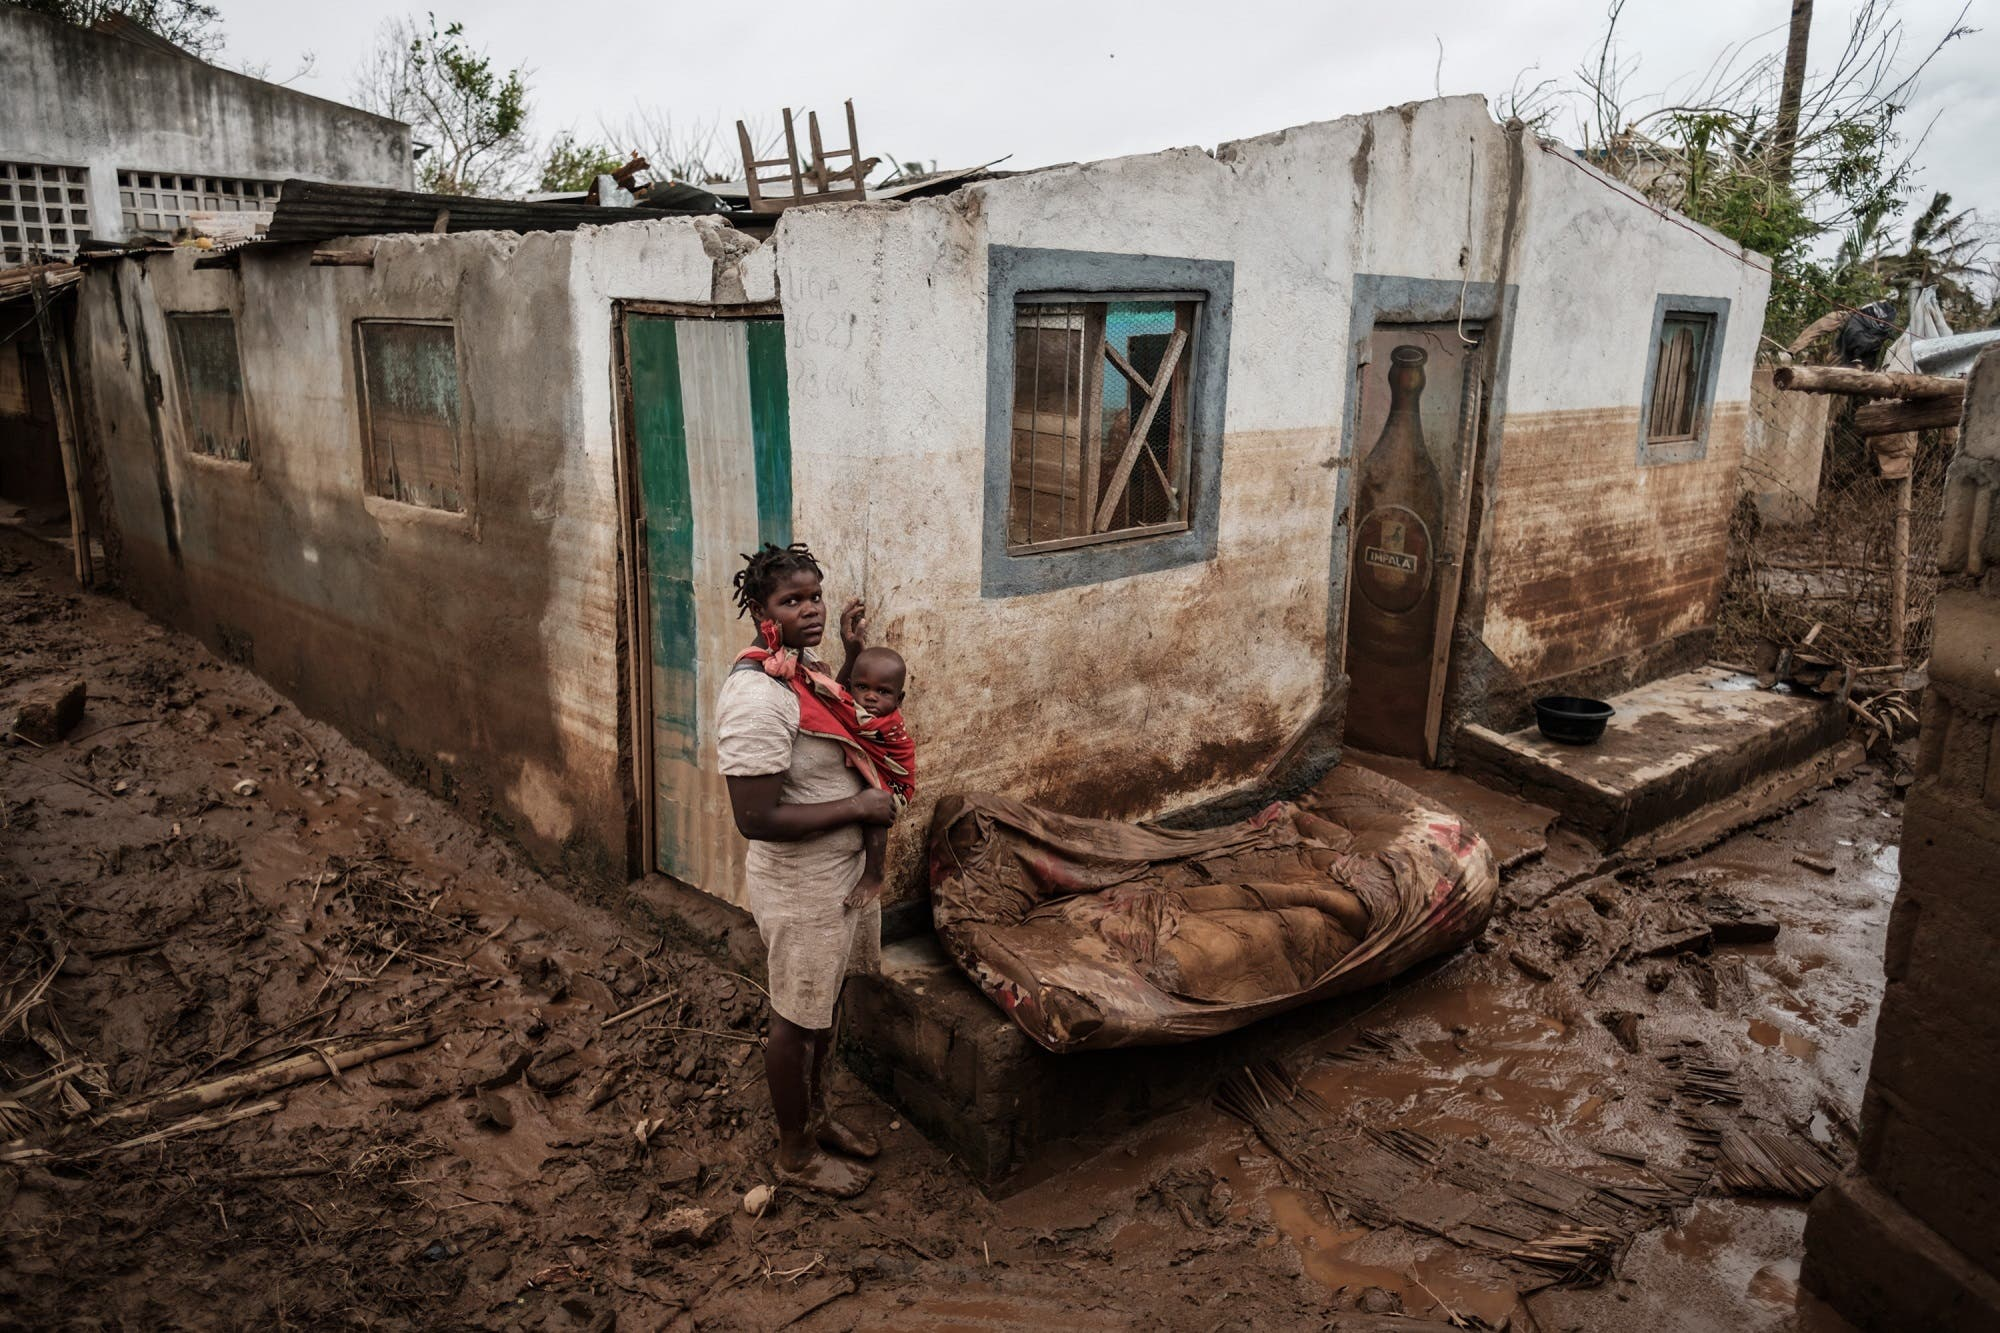 Rosa Tomas, 27, poses with her one-year-old son Dionisio Eduardo, in front of their destroyed and mud-covered home in Buzi, Mozambique, on March 23, 2019. (AFP)